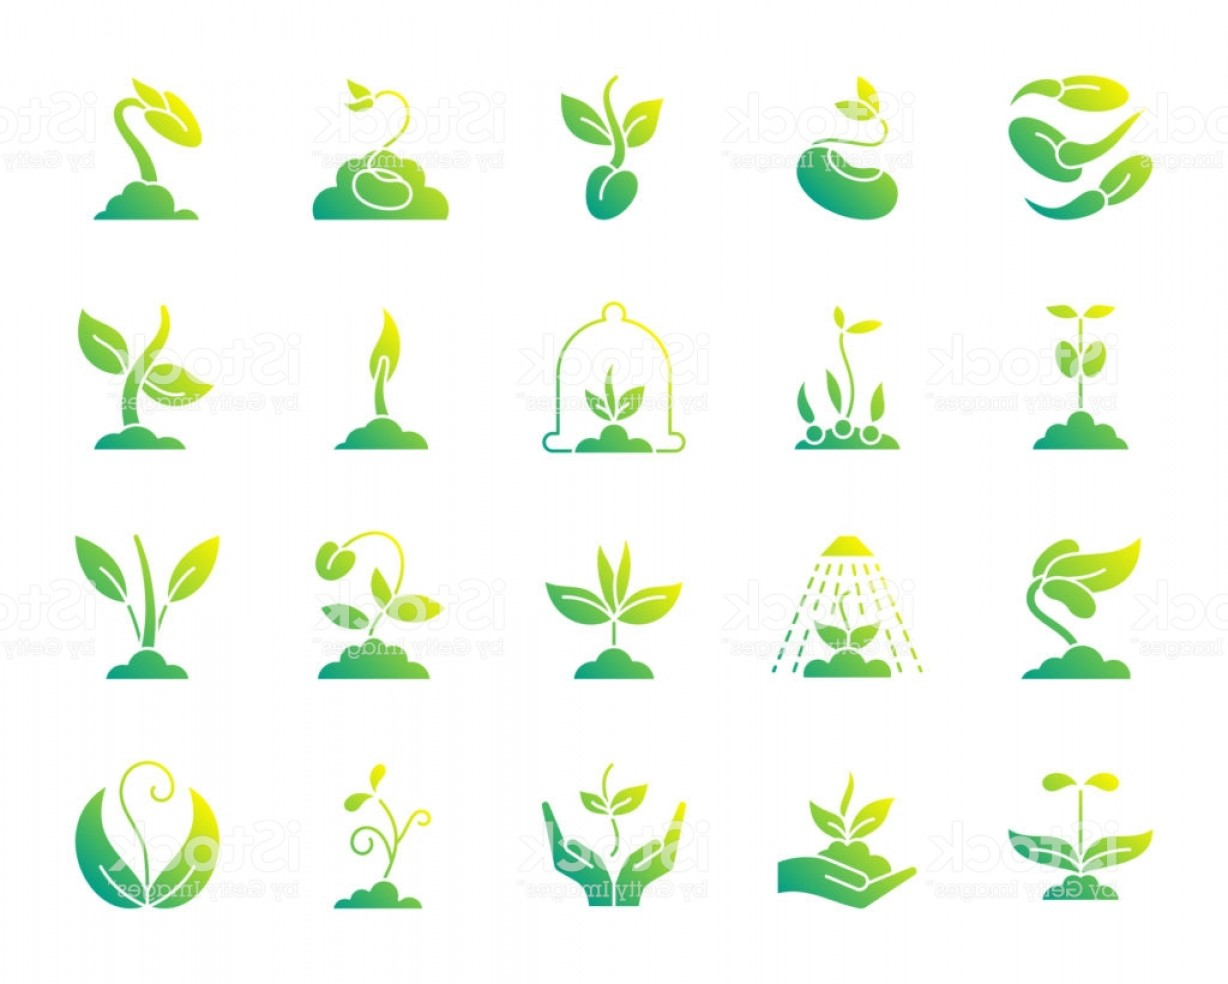 Alfalfa Sprouts Vector: Sprout Simple Gradient Icons Vector Set Gm